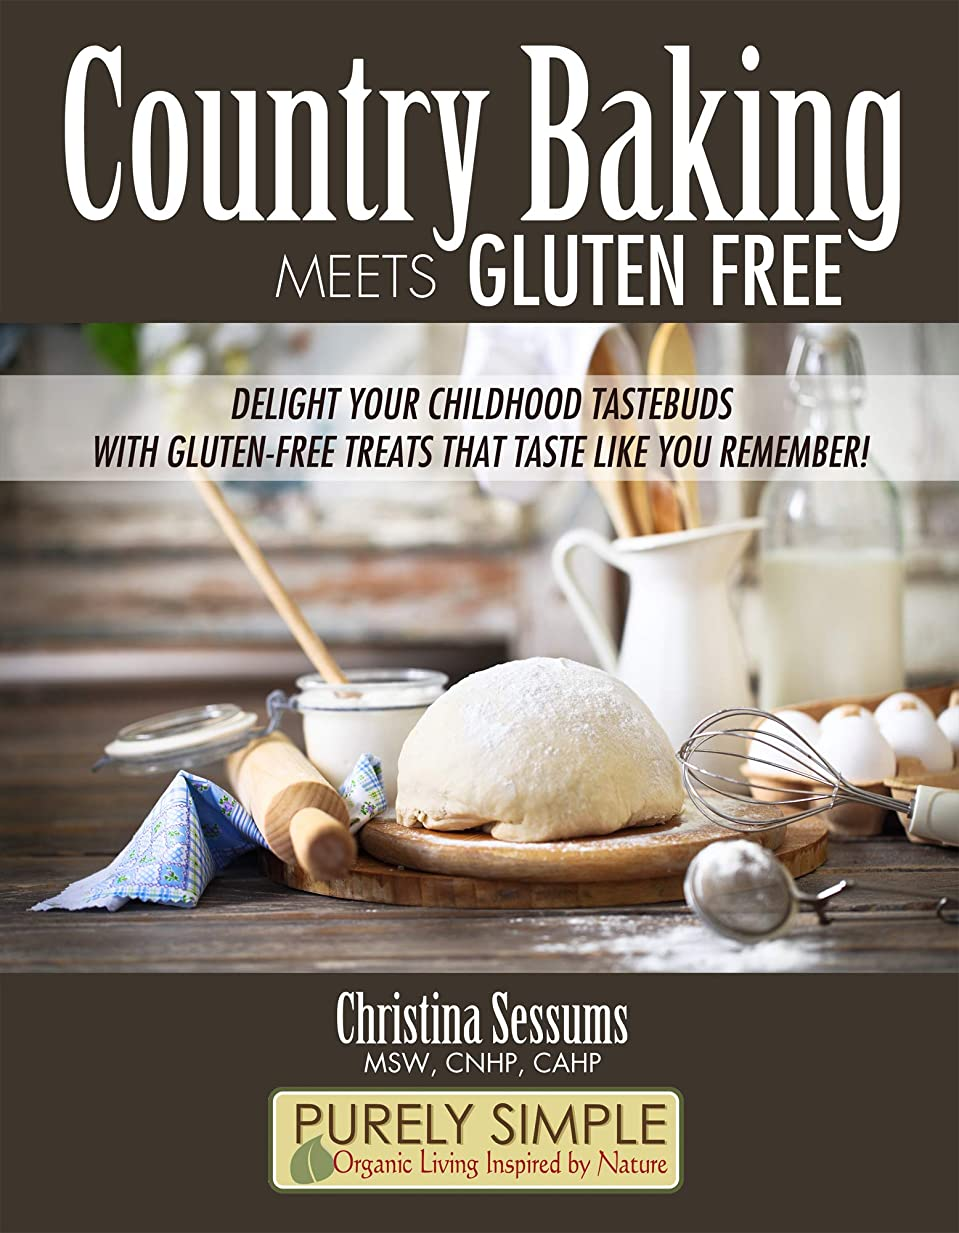 Country Baking Meets Gluten Free: Delight your childhood tastebuds with gluten-free treats that taste like you remember! (English Edition)